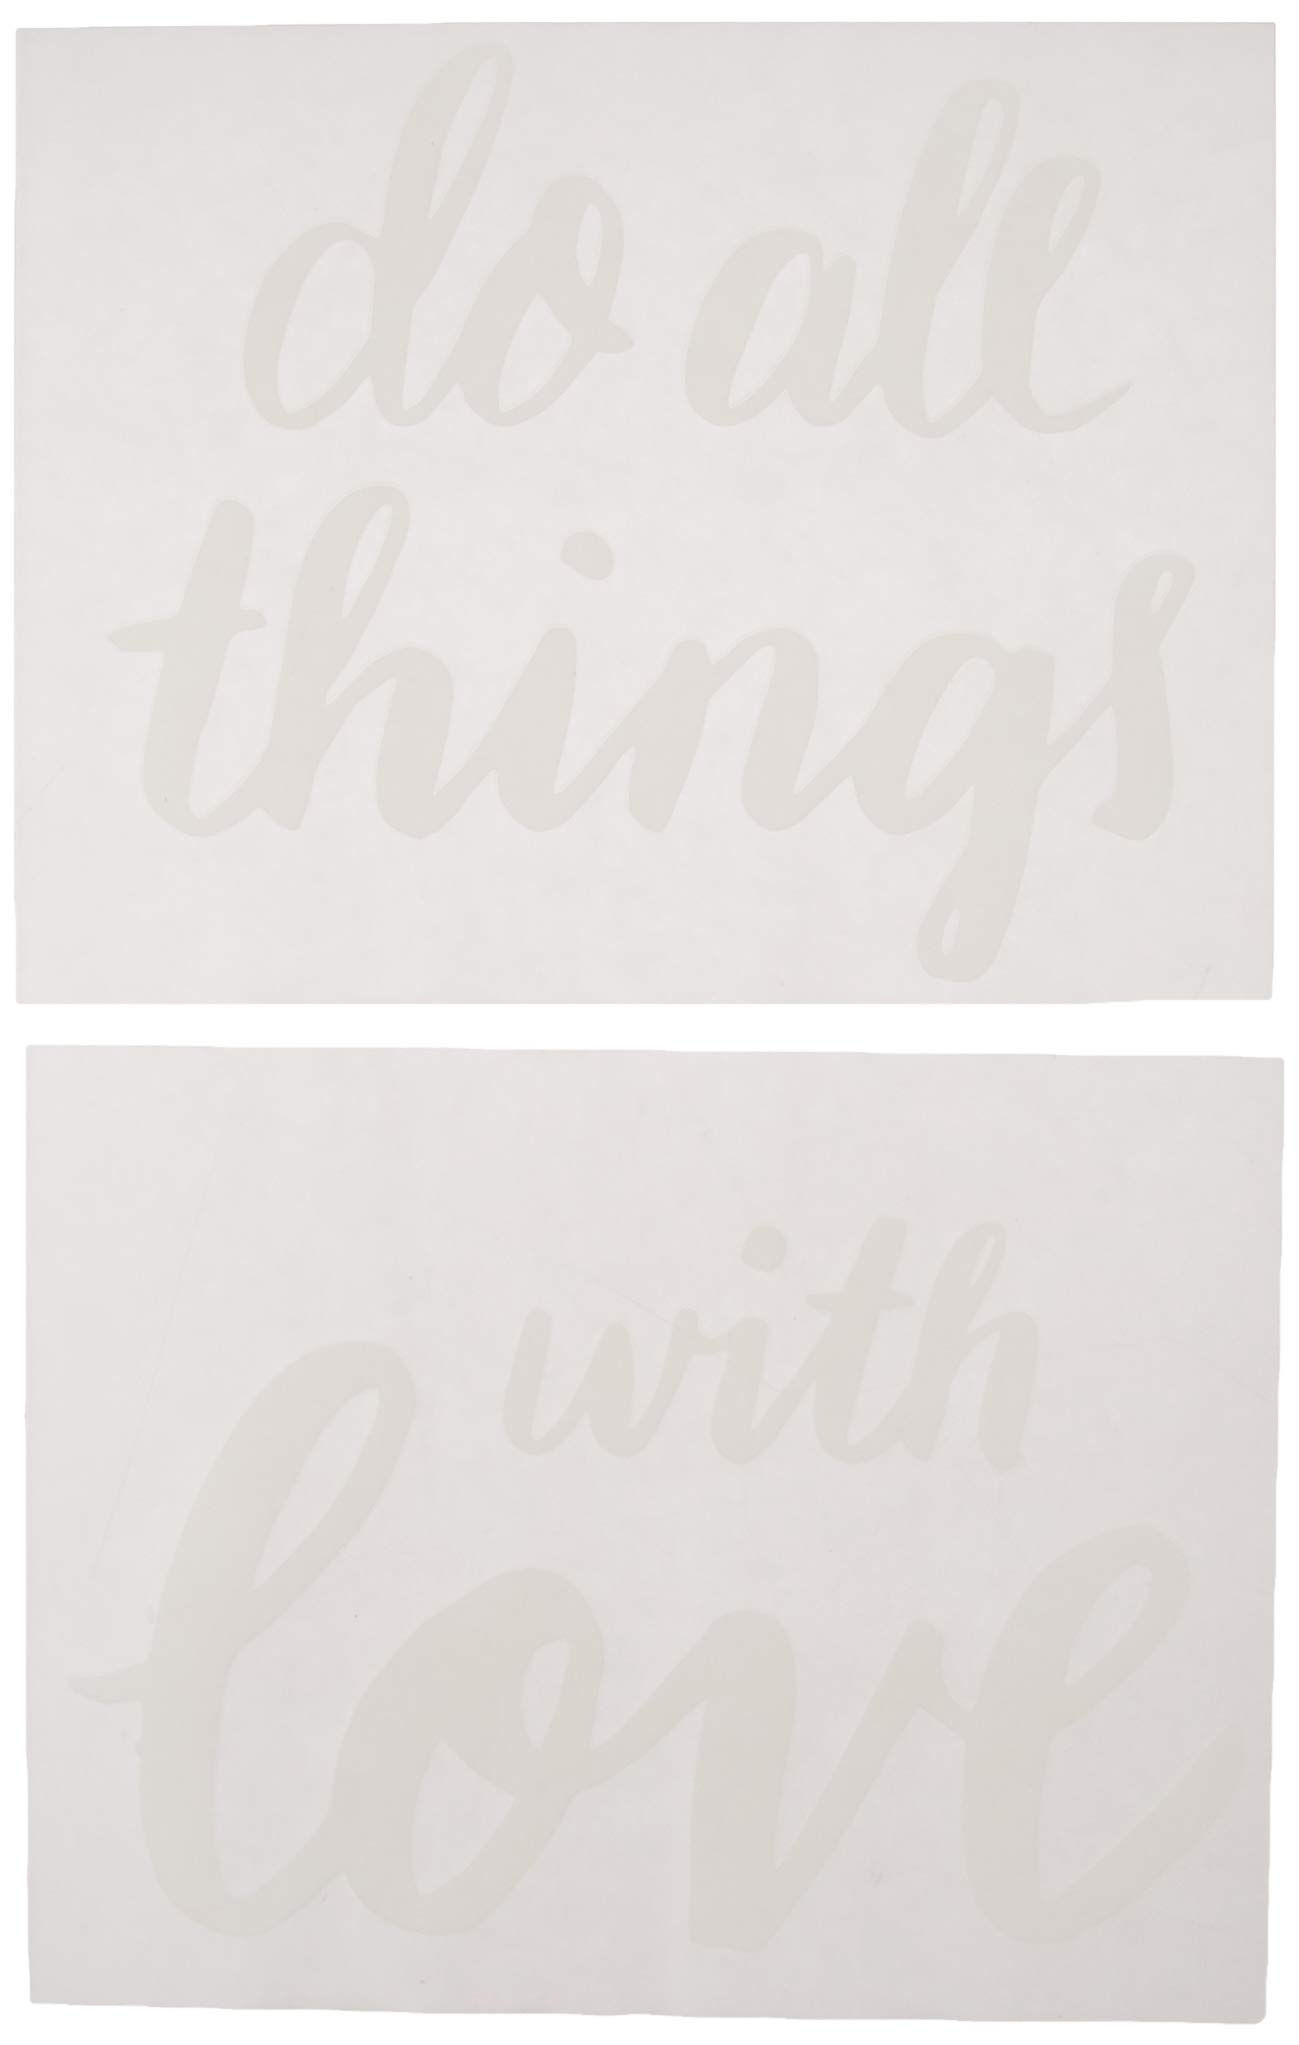 Better Than Paint E116378 Do All Things with Love Wall Décor, Art Transfer, White